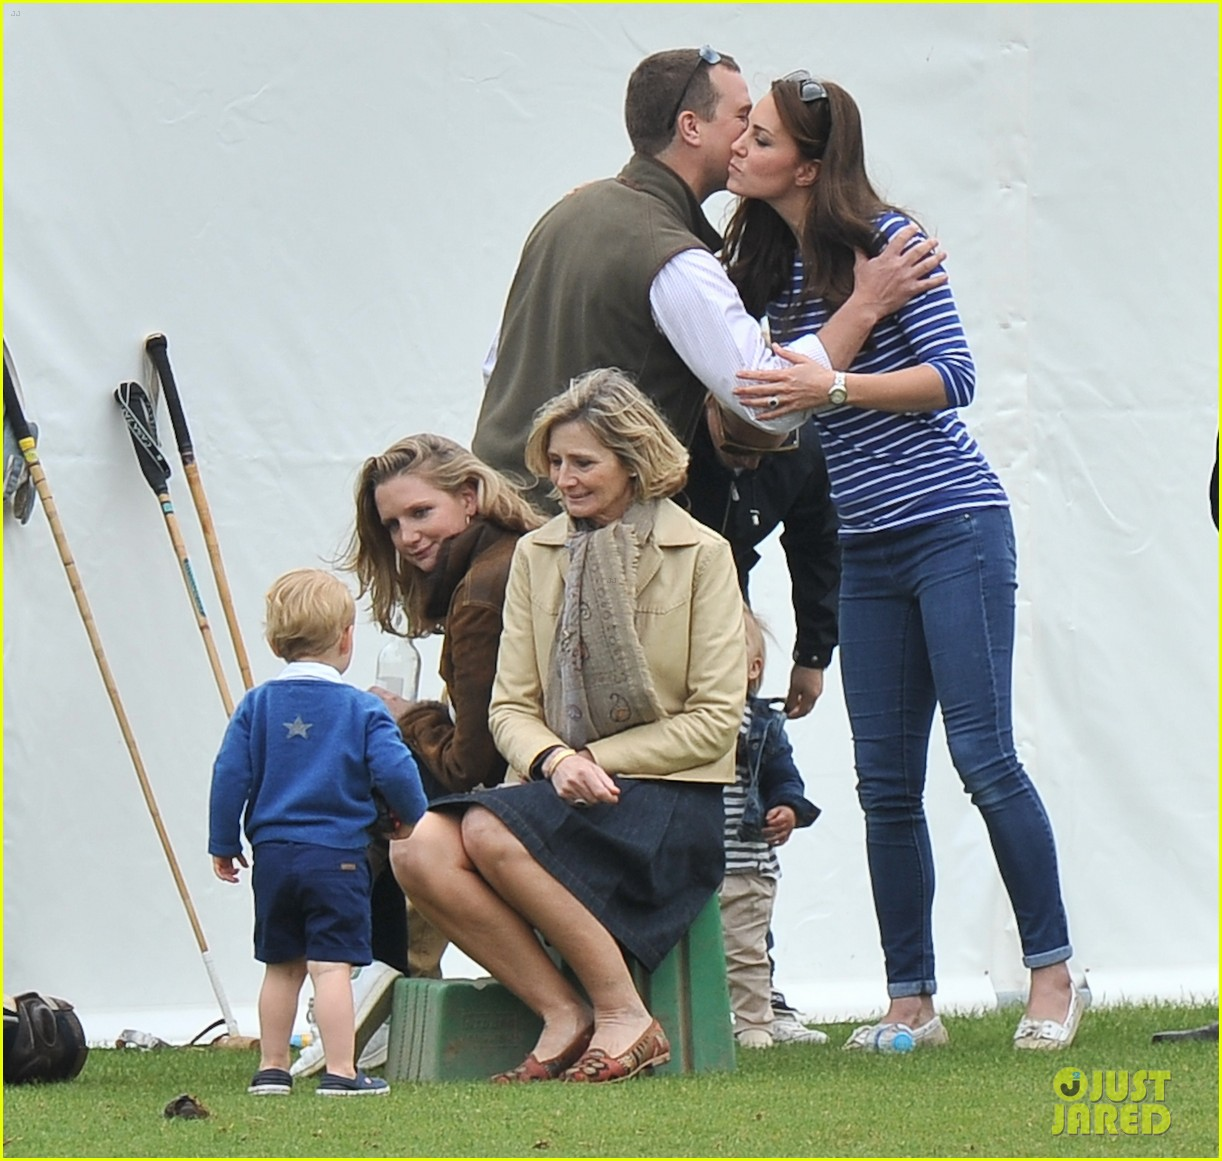 William And Kate Residence Full Sized Photo Of Prince George Kicks The Polo Ball With